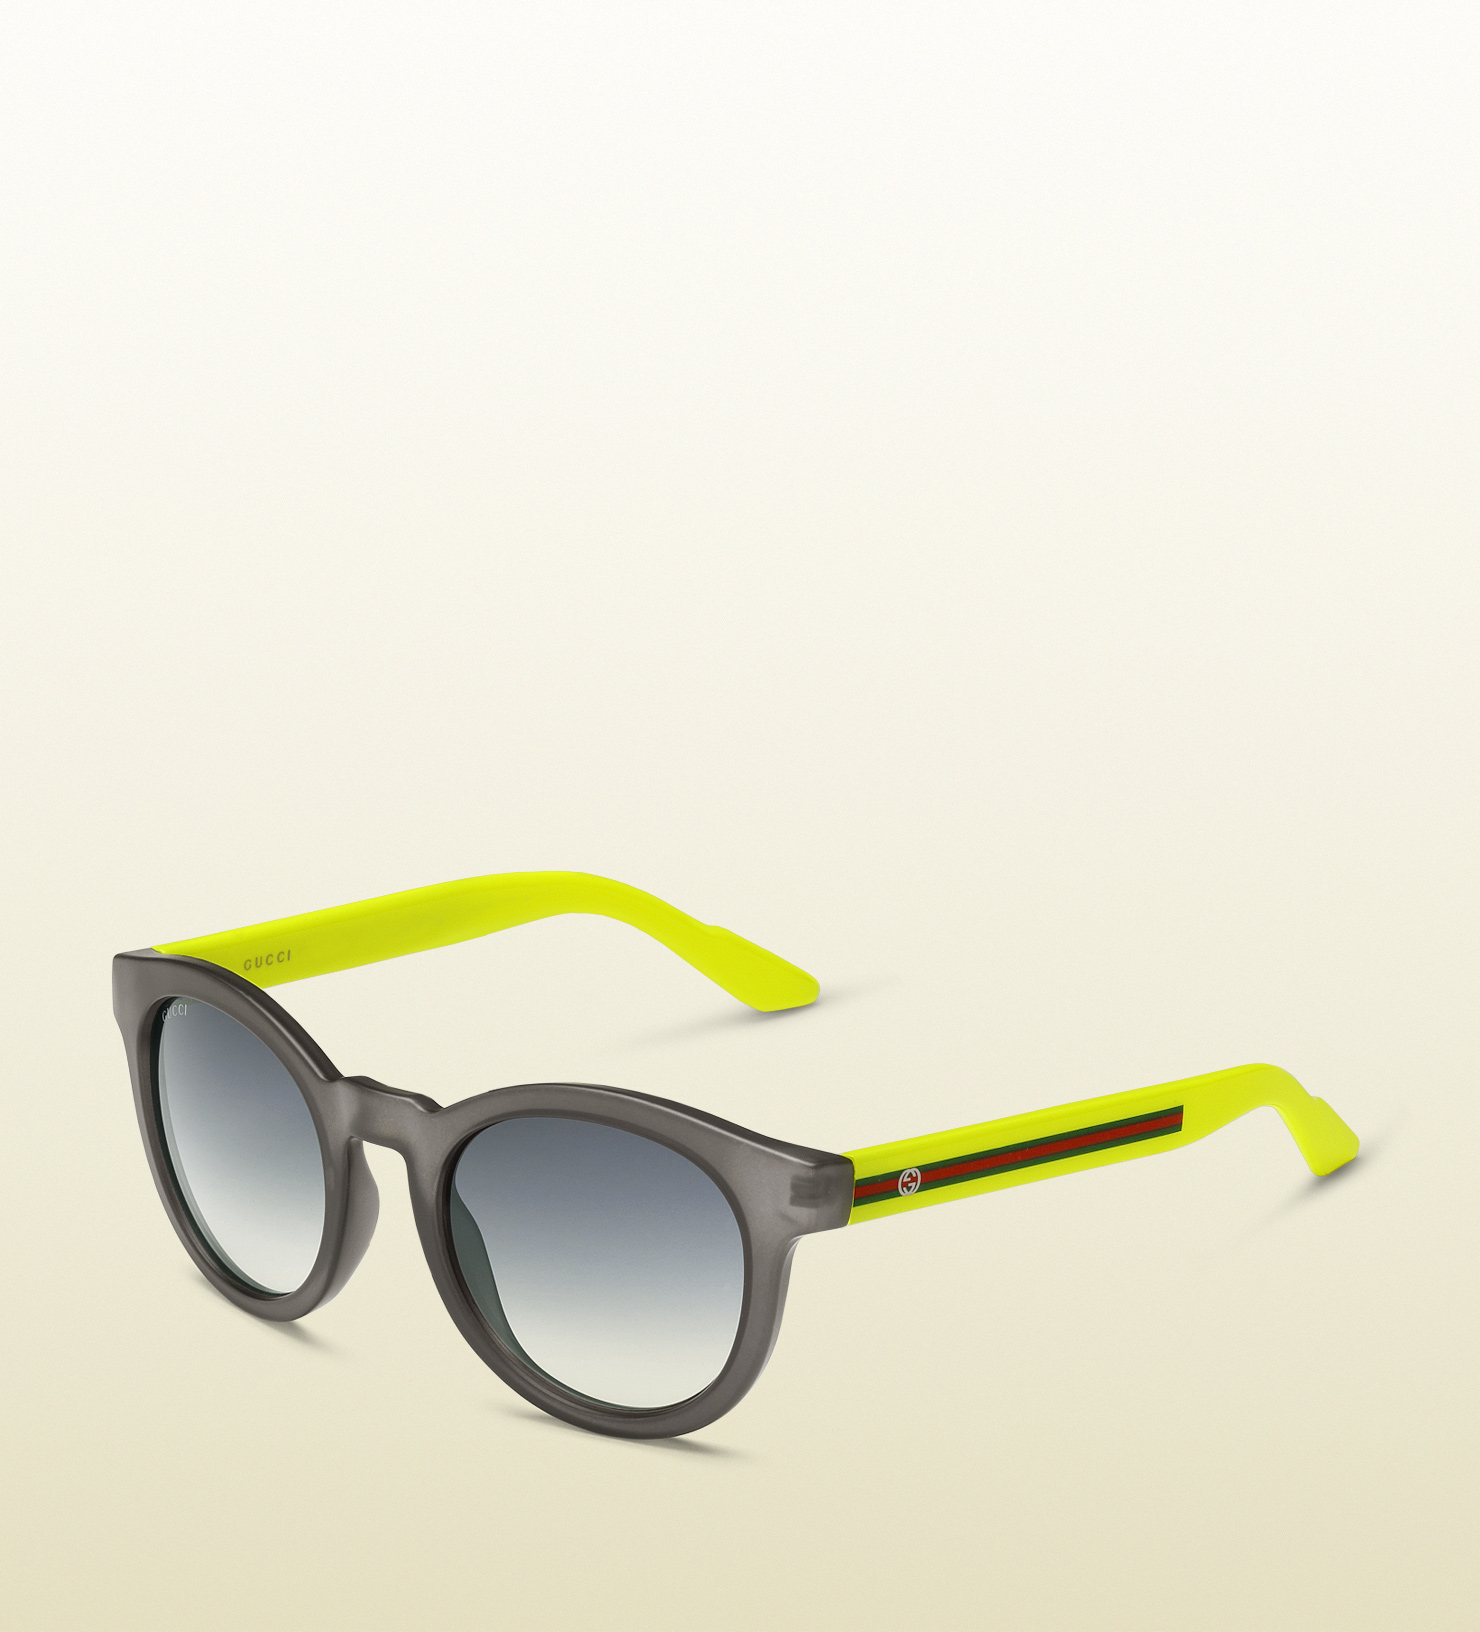 8ac646f6974 Lyst - Gucci Round Vintage Inspired Biobased Sunglasses in Yellow